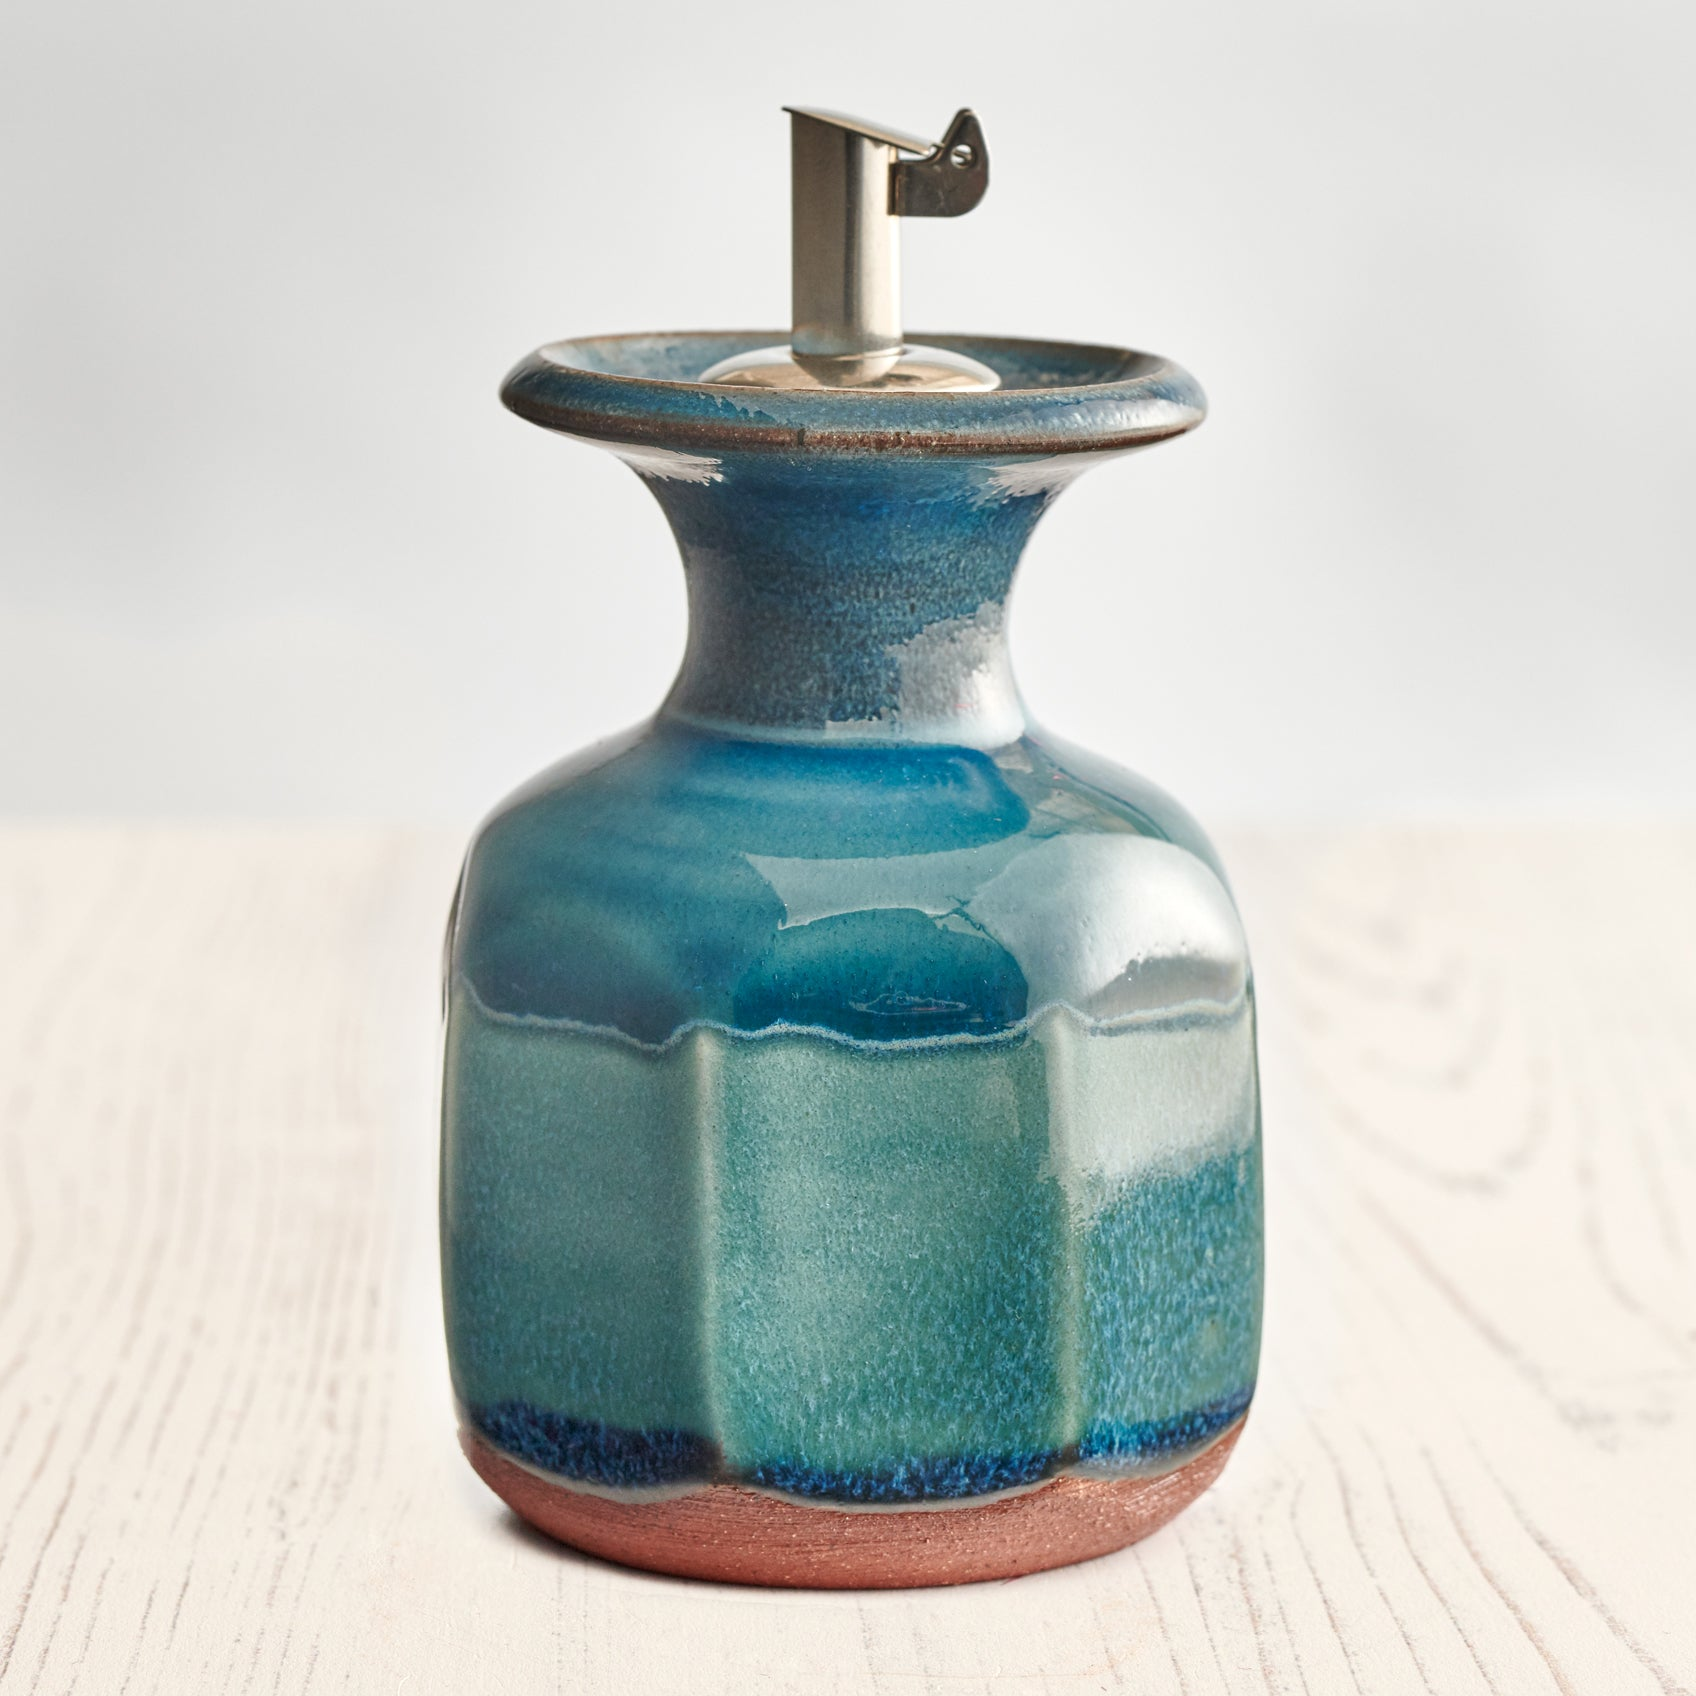 Small Olive Oil Decanter - Aqua Marine